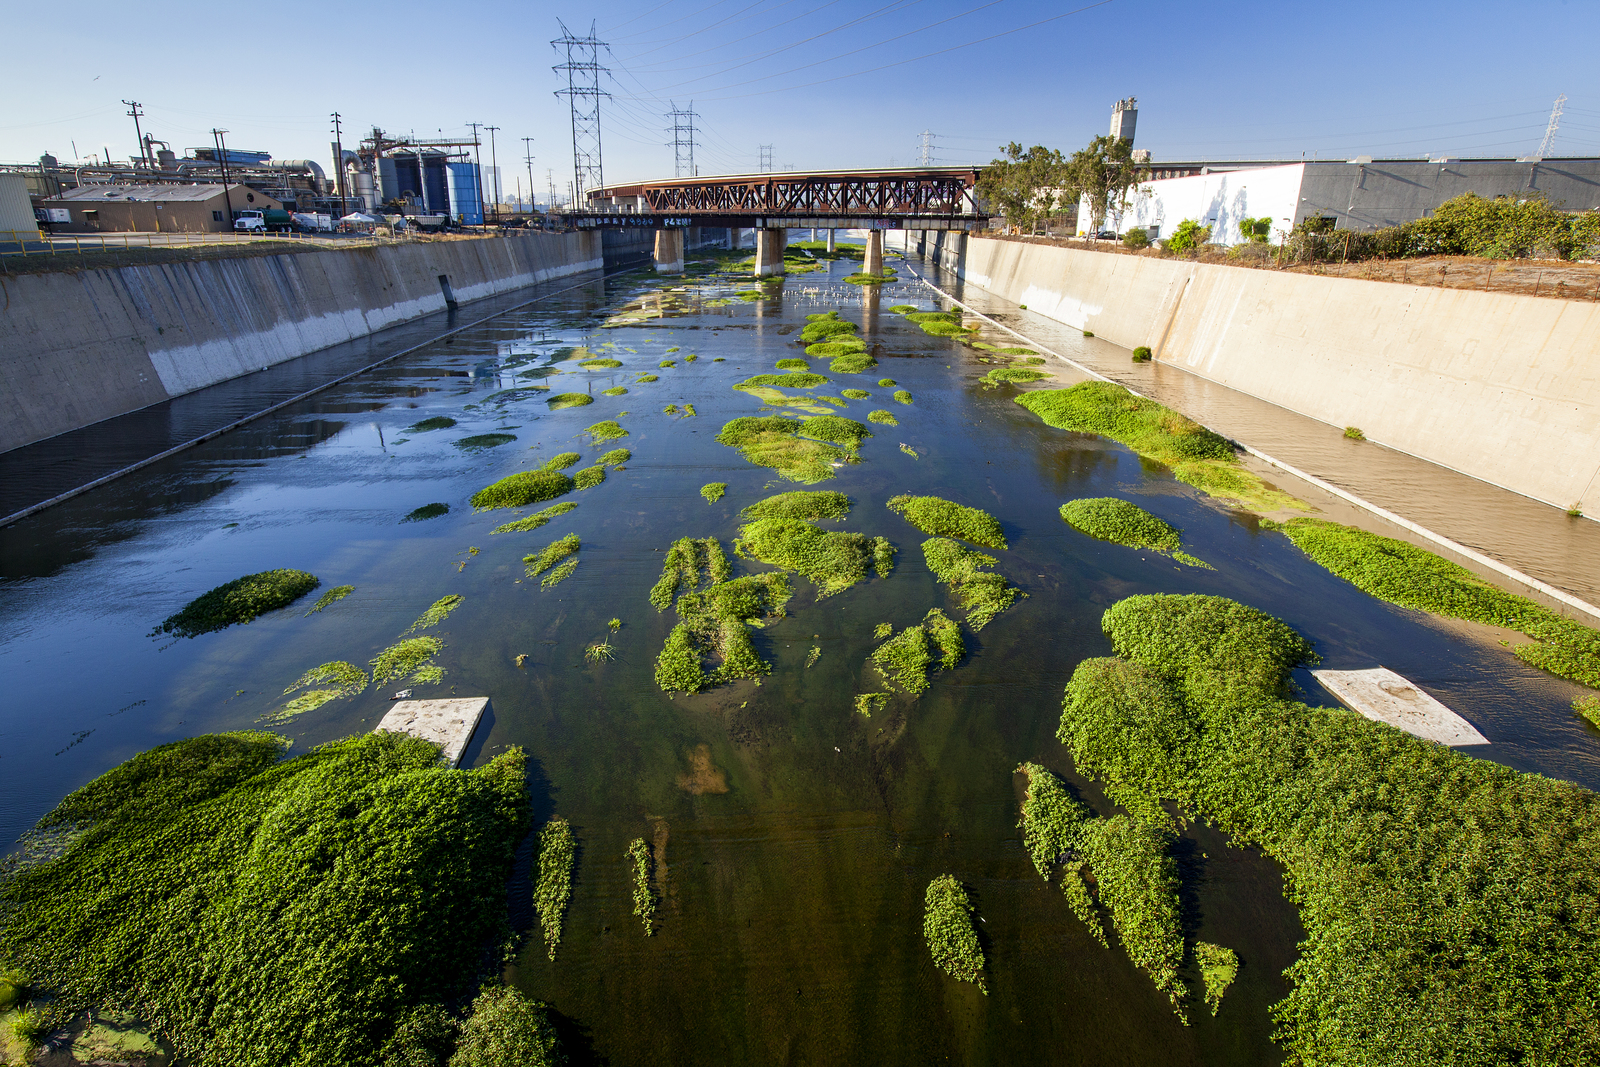 Most populous county in U.S. votes 'yes' on landmark stormwater legislation